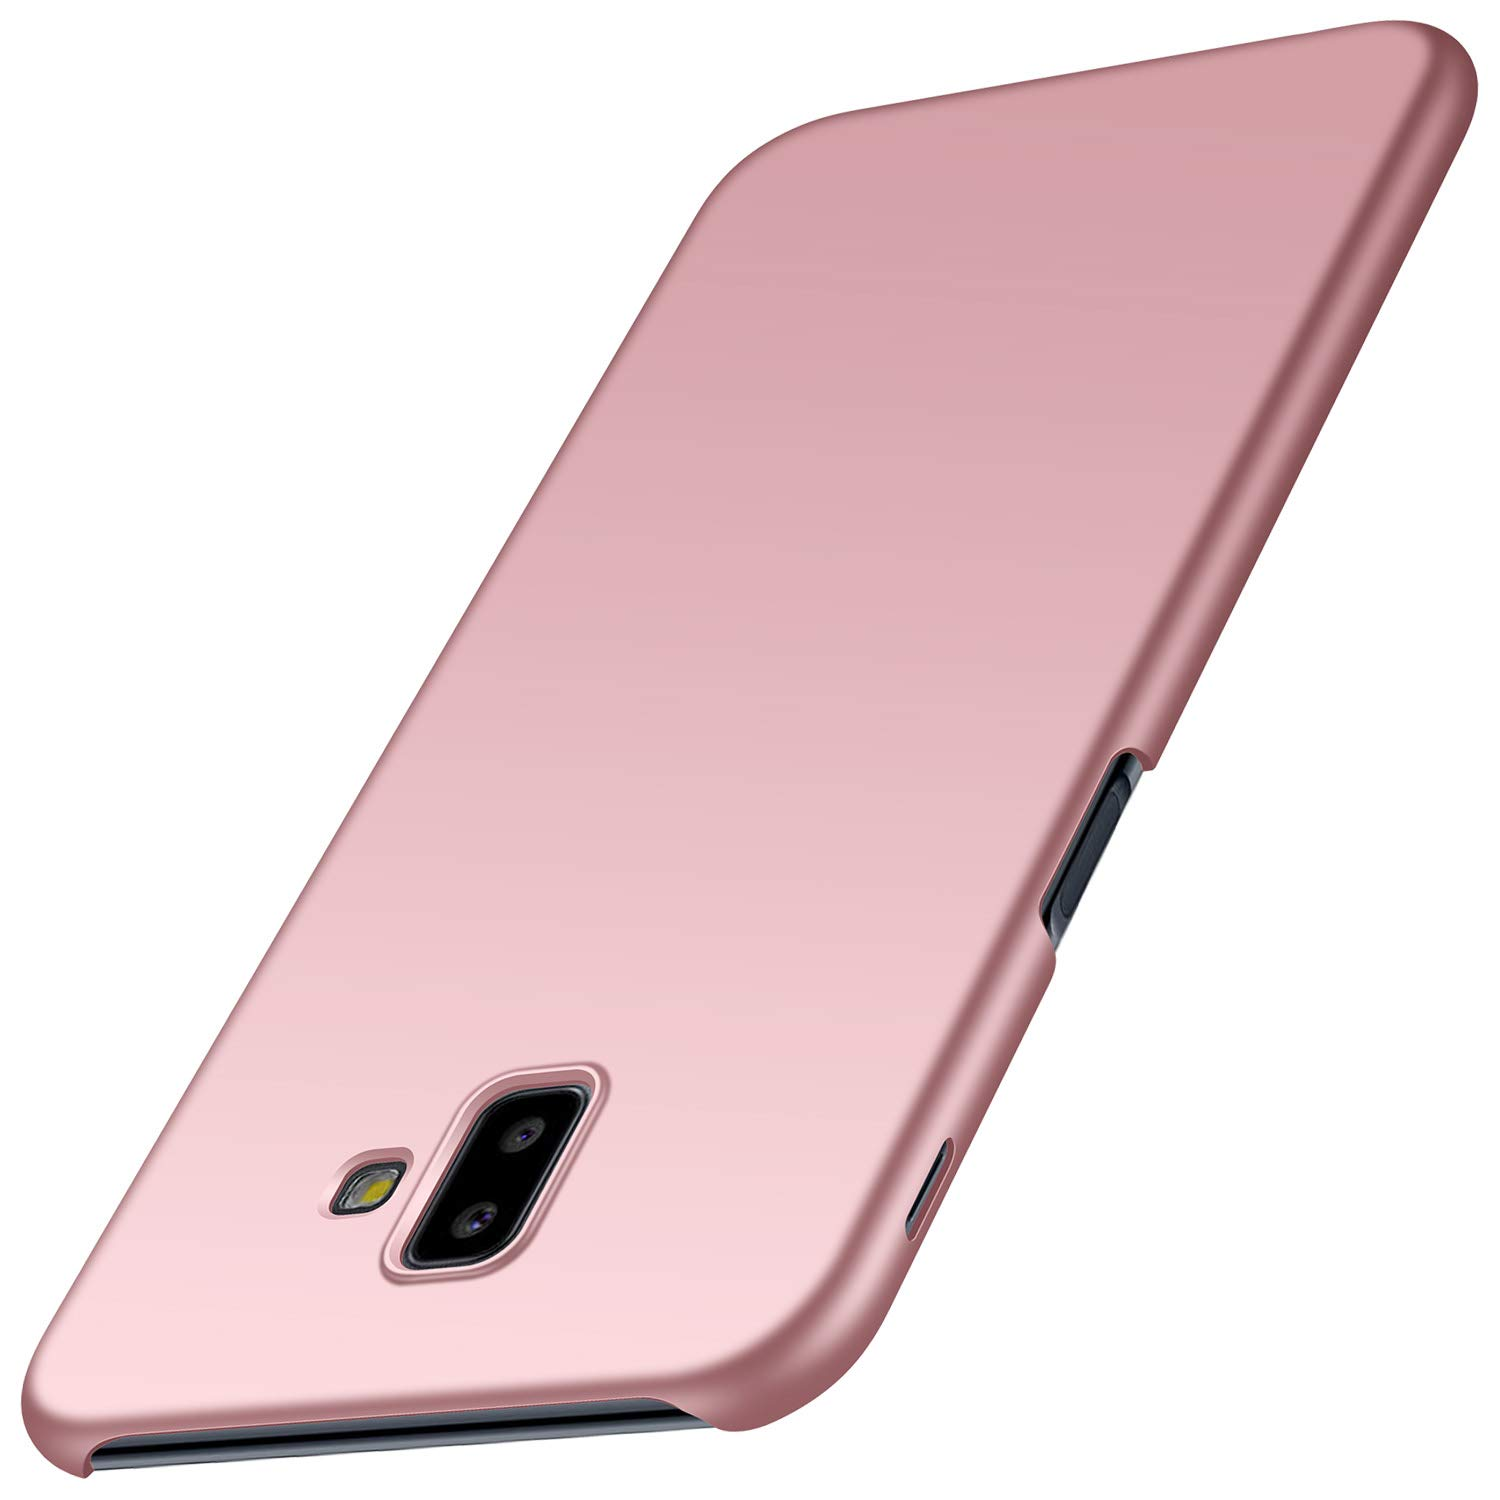 Anccer Colorful Series for Samsung Galaxy J6 Plus Case Ultra-Thin Fit Premium PC Material Slim Cover for Samsung Galaxy J6 Plus (Smooth Rose Gold)